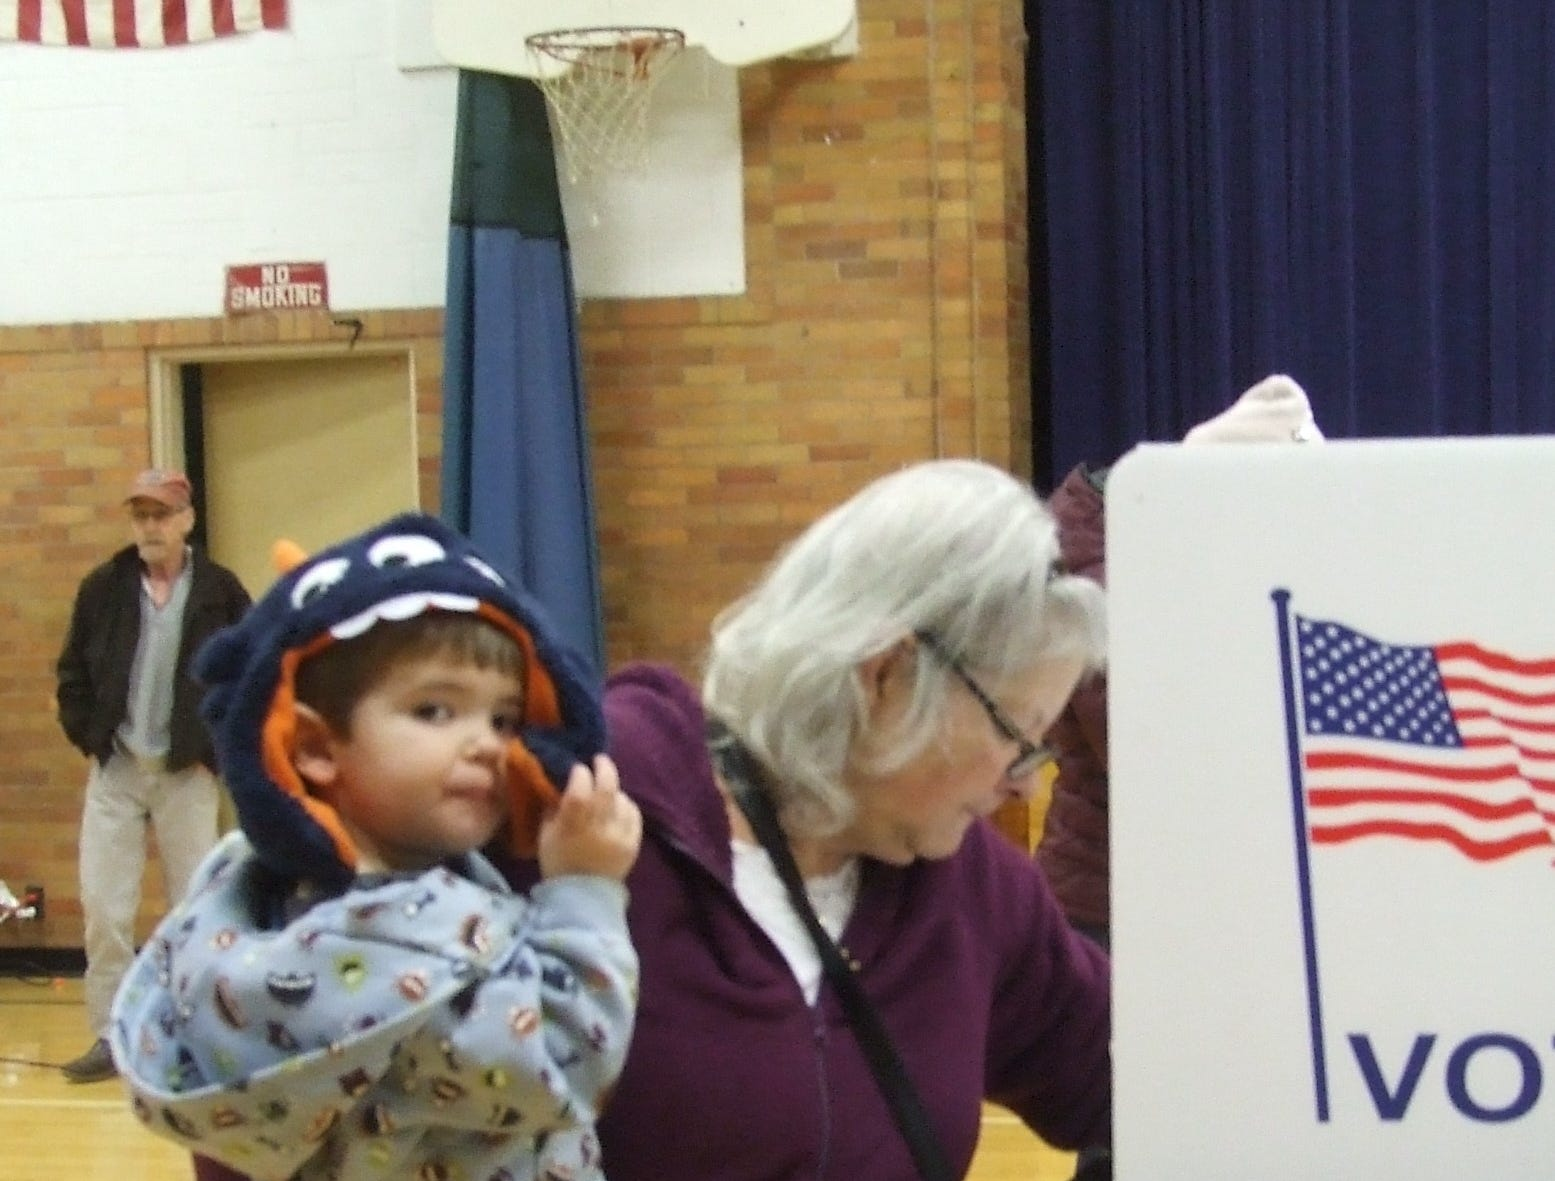 Terry Caloia of Redford Township votes at Hilbert Middle School on Tuesday while holding grandson Benjamin Lieto, 2.